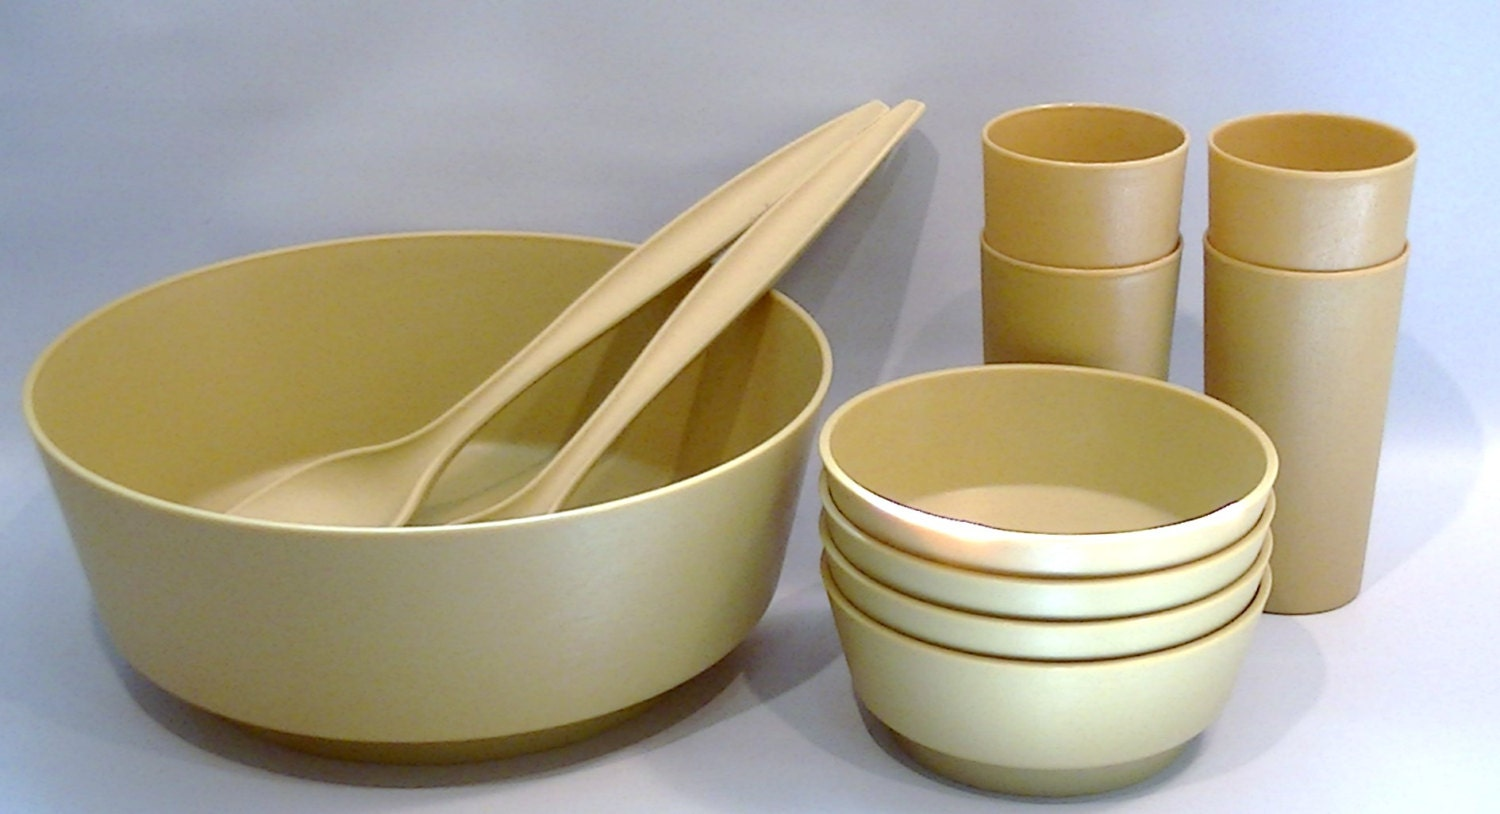 Vintage Rubbermaid Serving and Salad Bowl Set for 4 includes Serving Forks and Tumblers, Mustard Yel